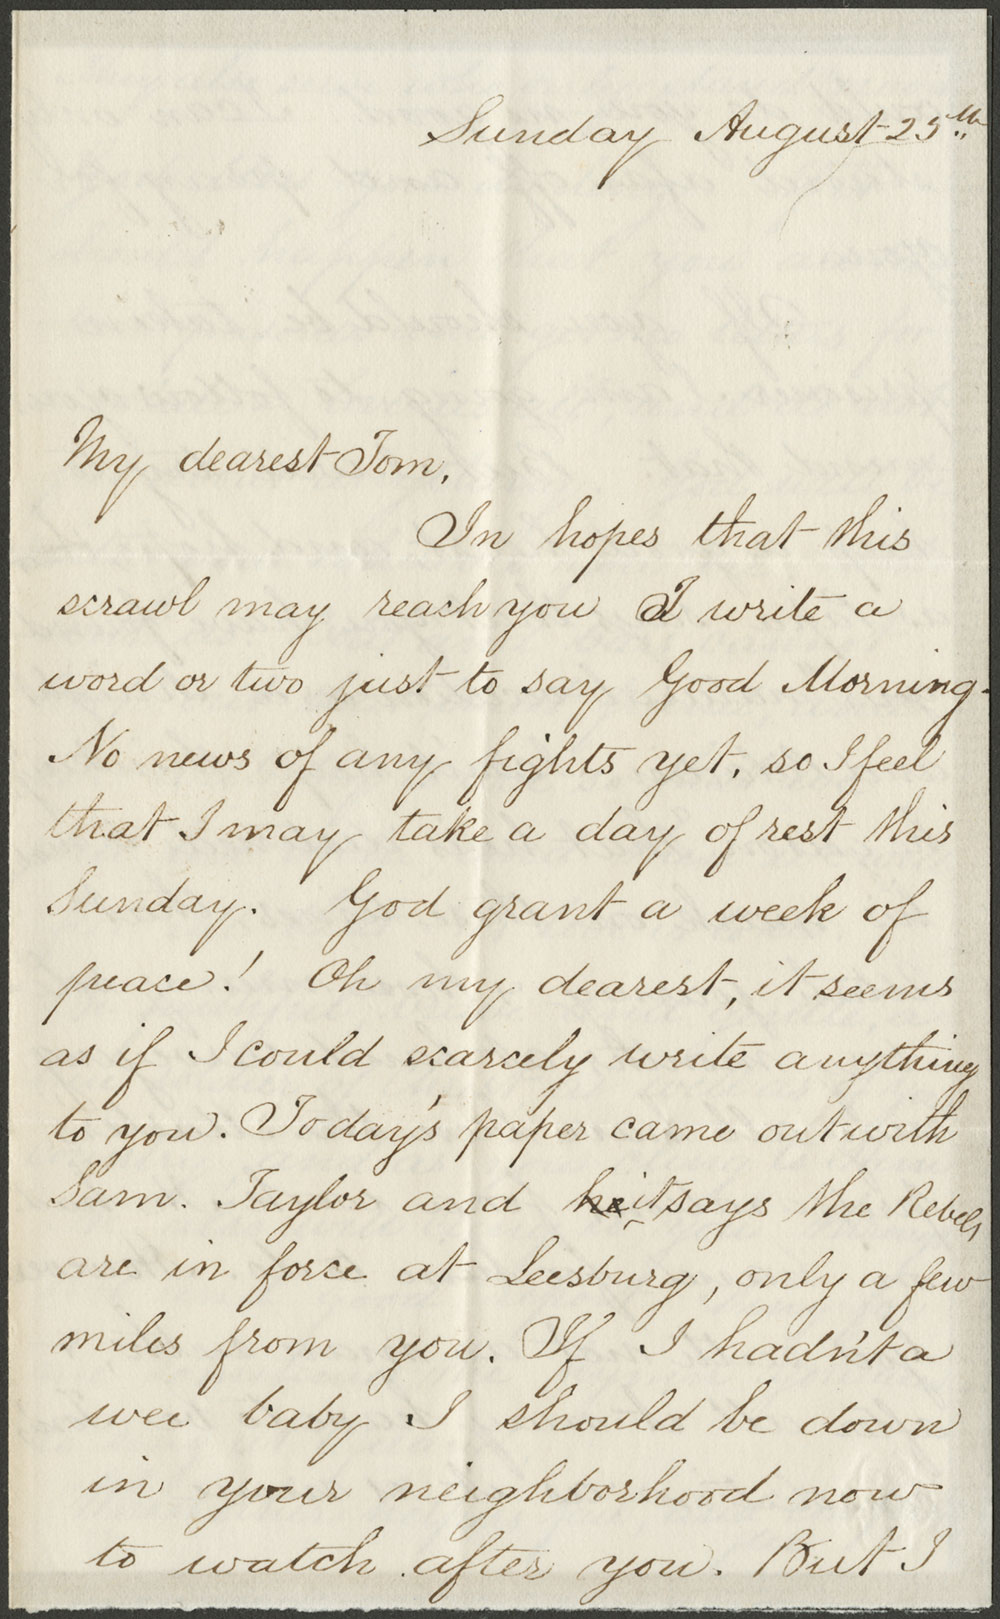 Elizabeth Kane to Thomas L. Kane. 25 August, 1861 (Vault MSS 792, Box 21, Folder 1, Item 52)